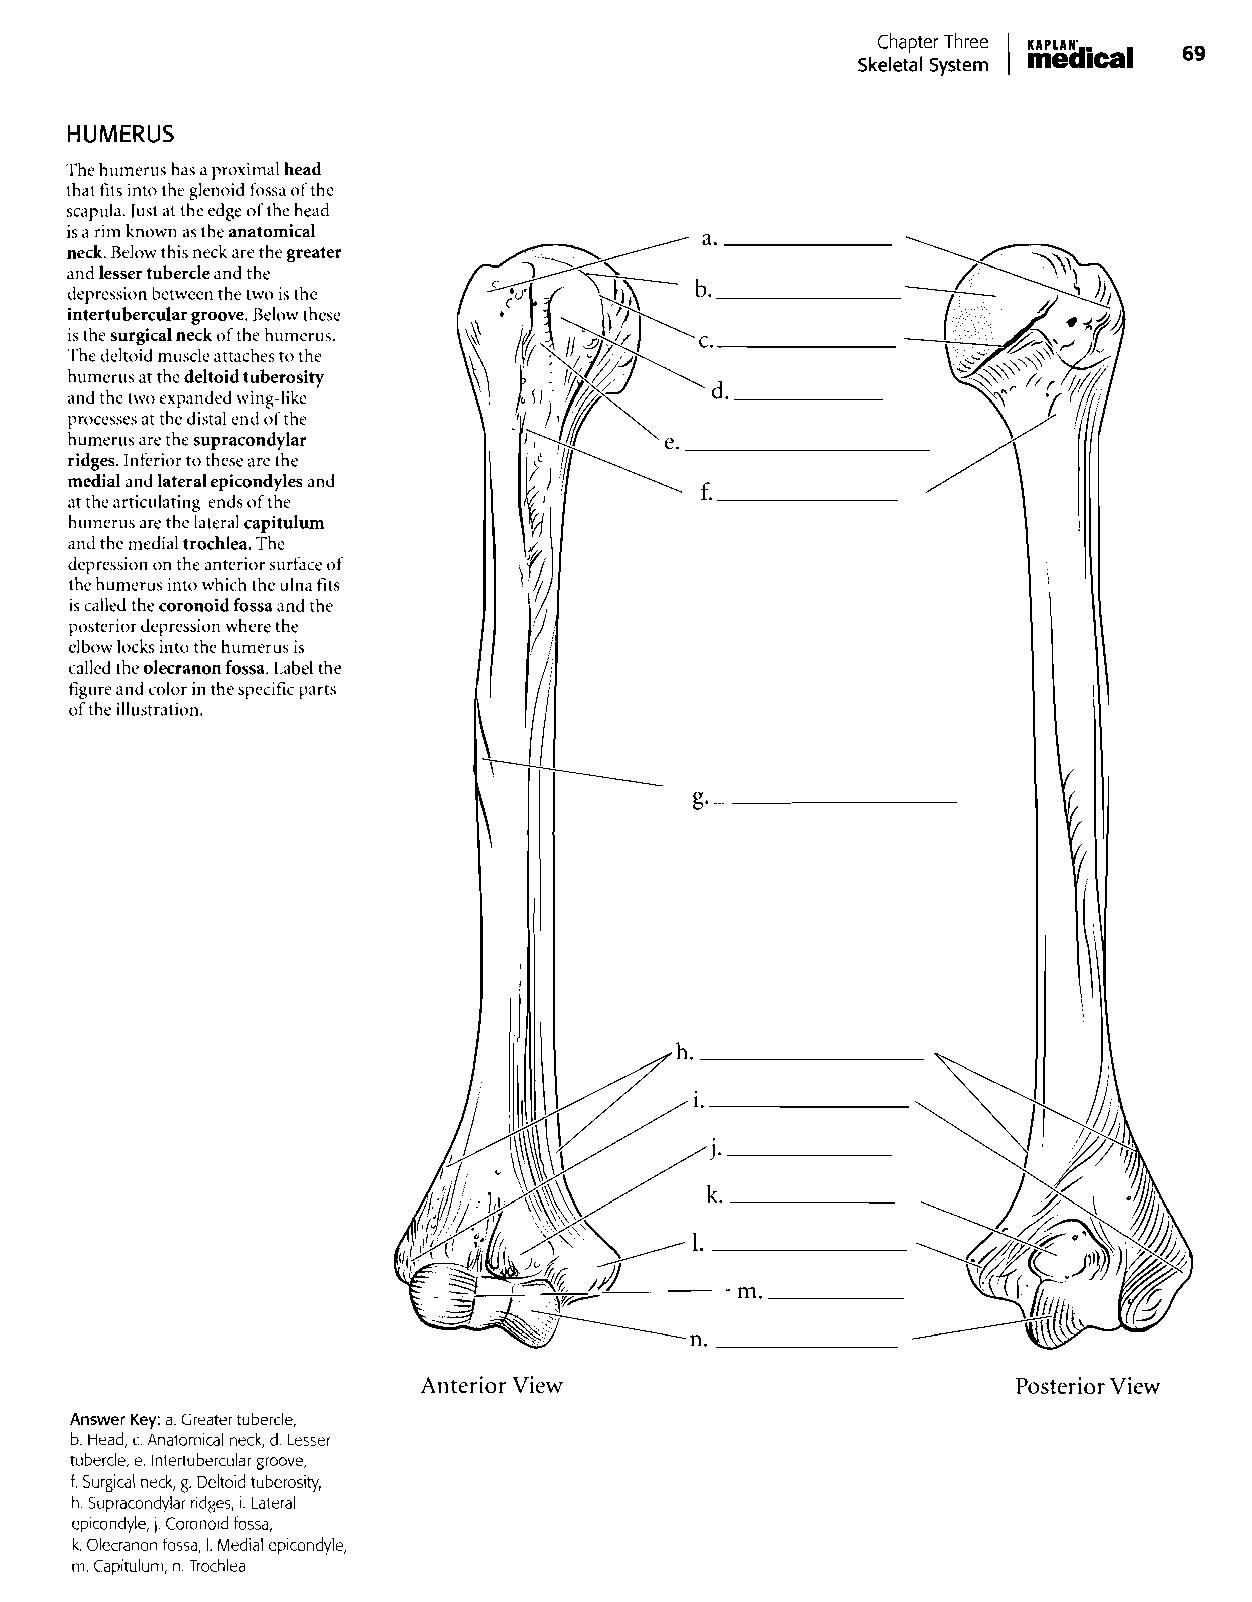 Kaplan Anatomy Coloring Book.pdf | boudli | Pinterest | Anatomy and ...